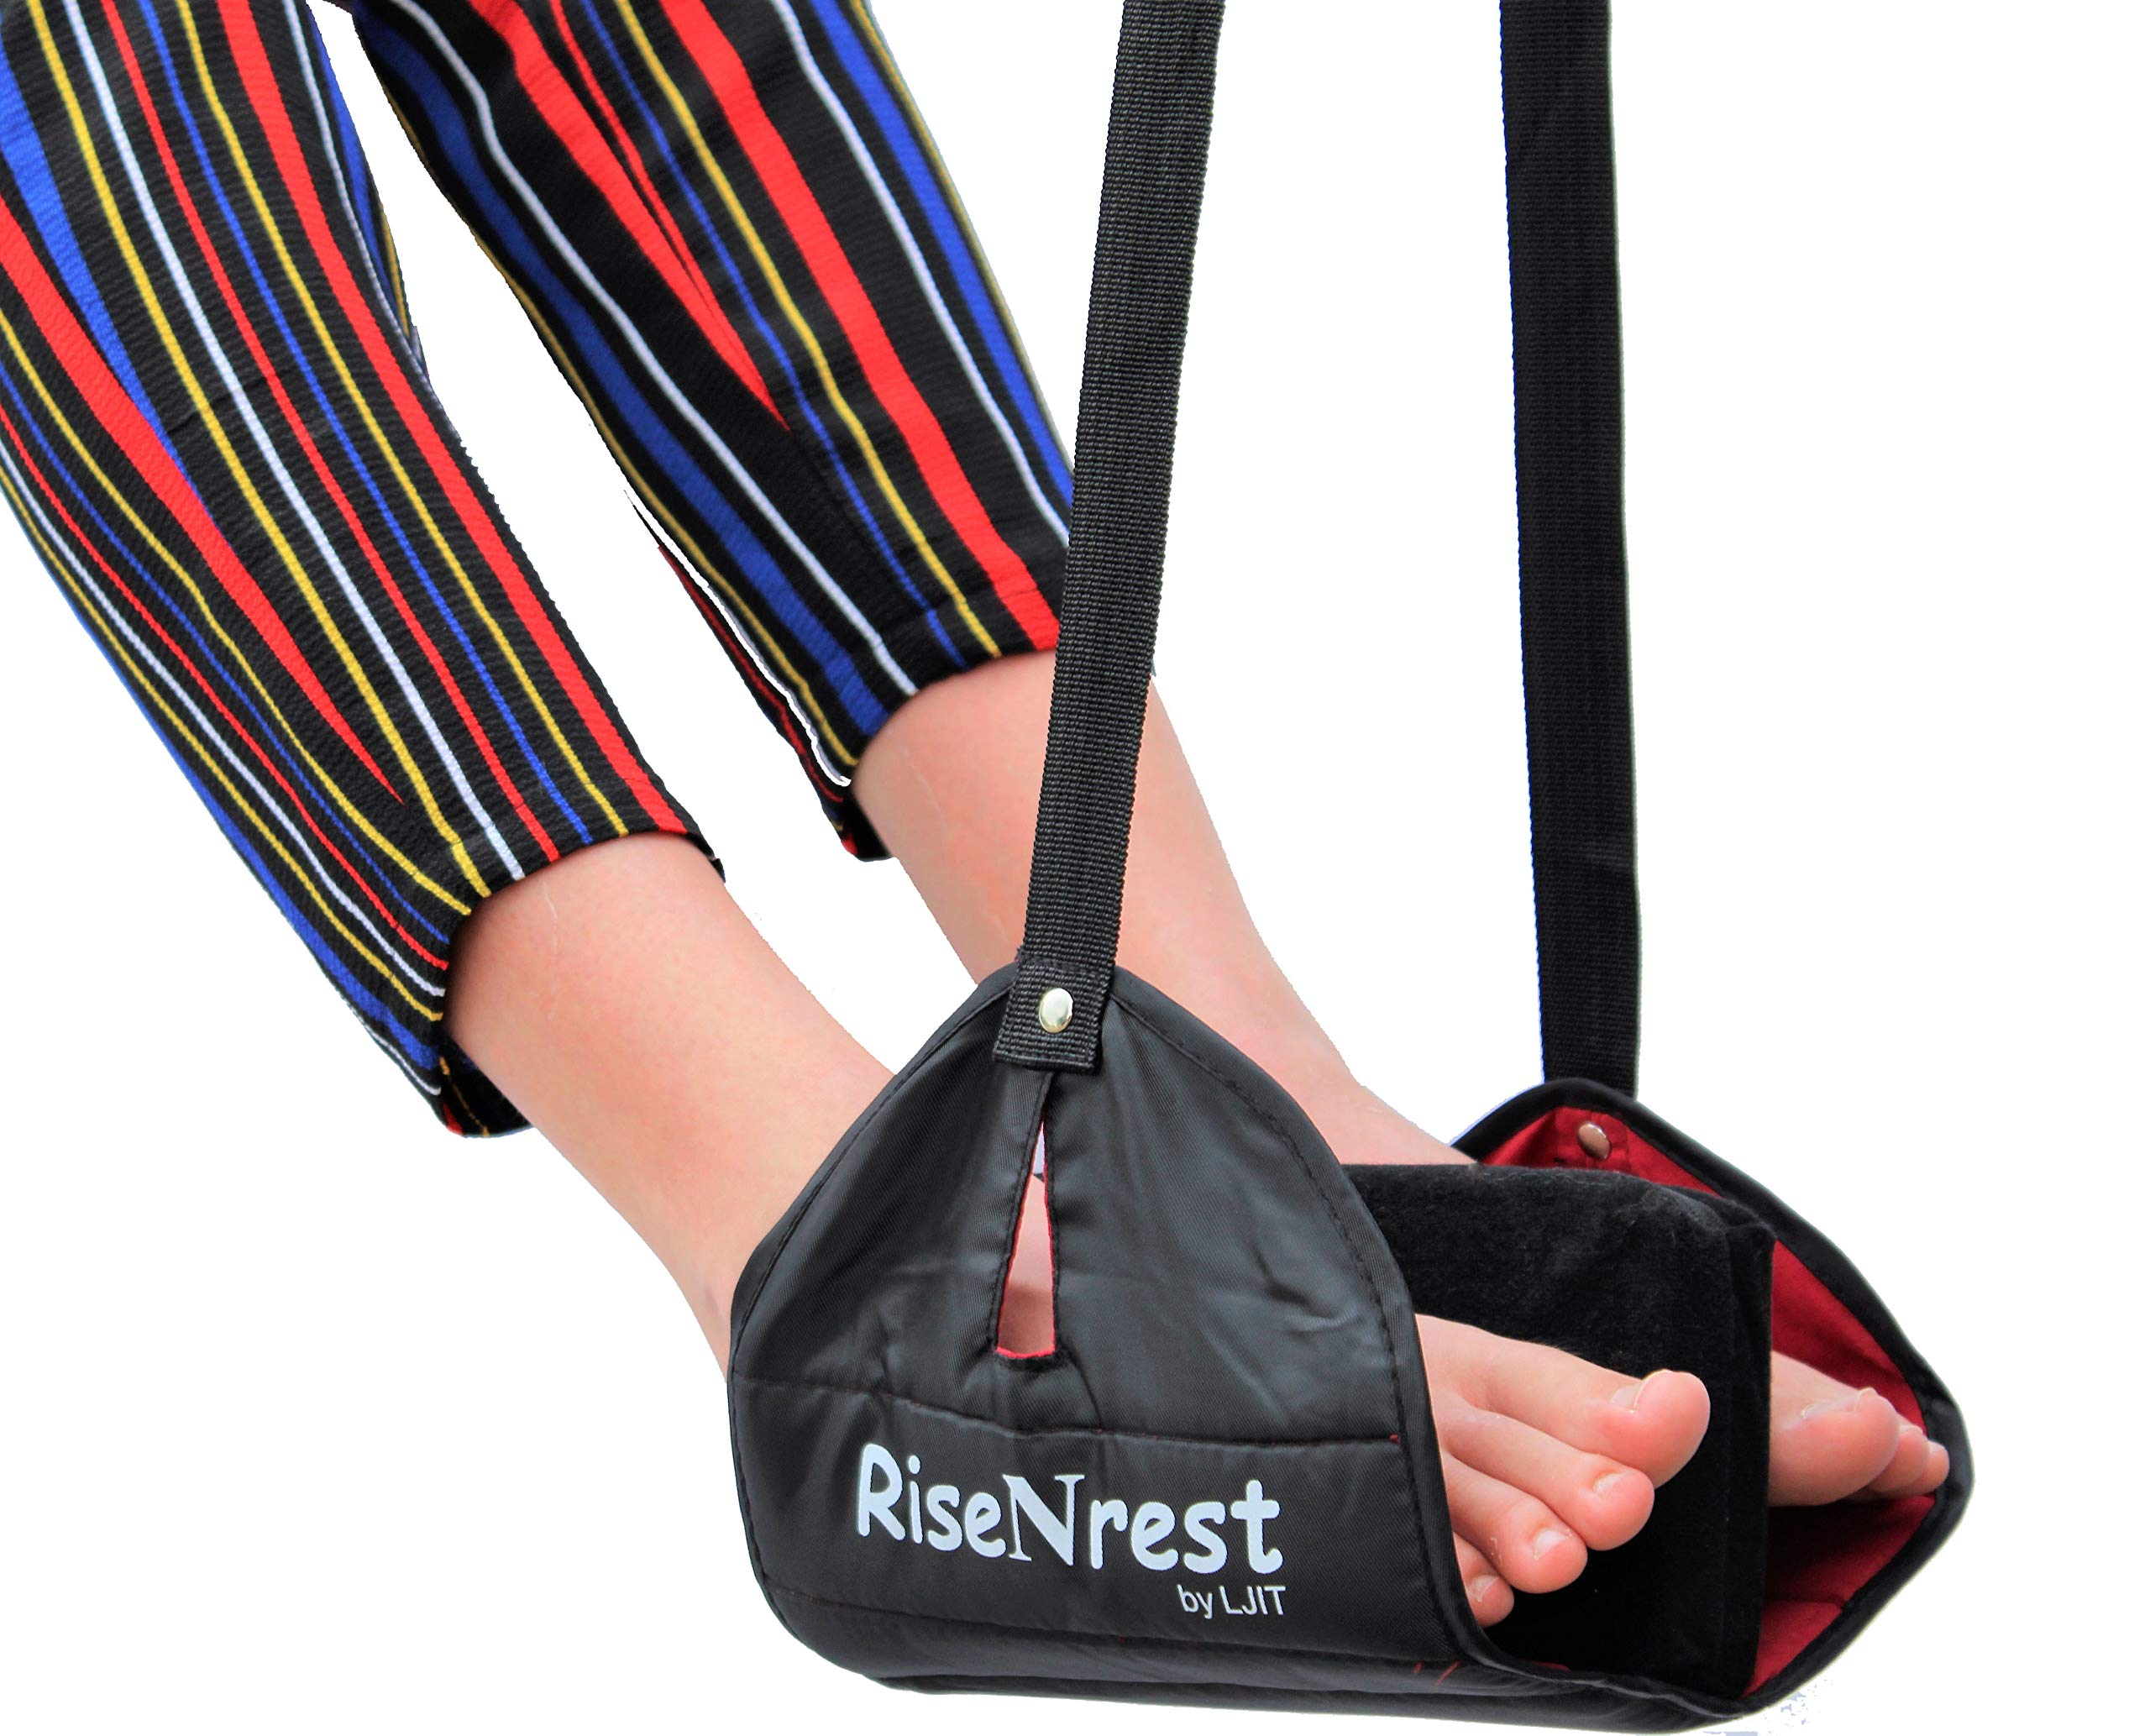 RiseNrest Airplane Footrest Hammock with Soft Pillow Cushioned Foot Divider - Airplane Travel Accessories -Portable Travel Foot Rest for Long International Flights